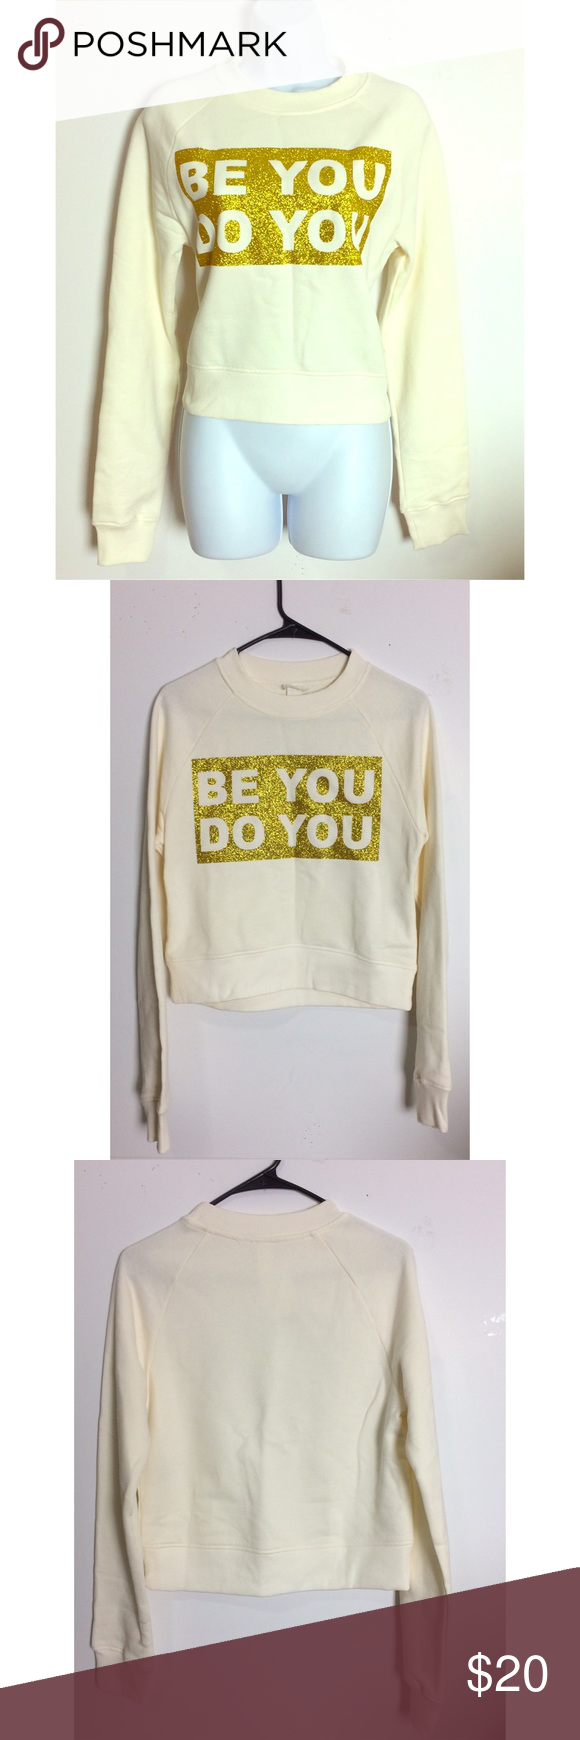 Be You Do You Cream & Gold Glitter Crewneck Love this comfy sweatshirt super cute, stylish and trendy! NWT! PRICE IS NOT FIRM OFFERS ACCEPTED UPON REQUEST...😊 Measurements: Armpit to Armpit: 18.5 Length:21 This listing is BRAND NEW WITH TAGS! Material: 100% Cotton H&M Tops Sweatshirts & Hoodies